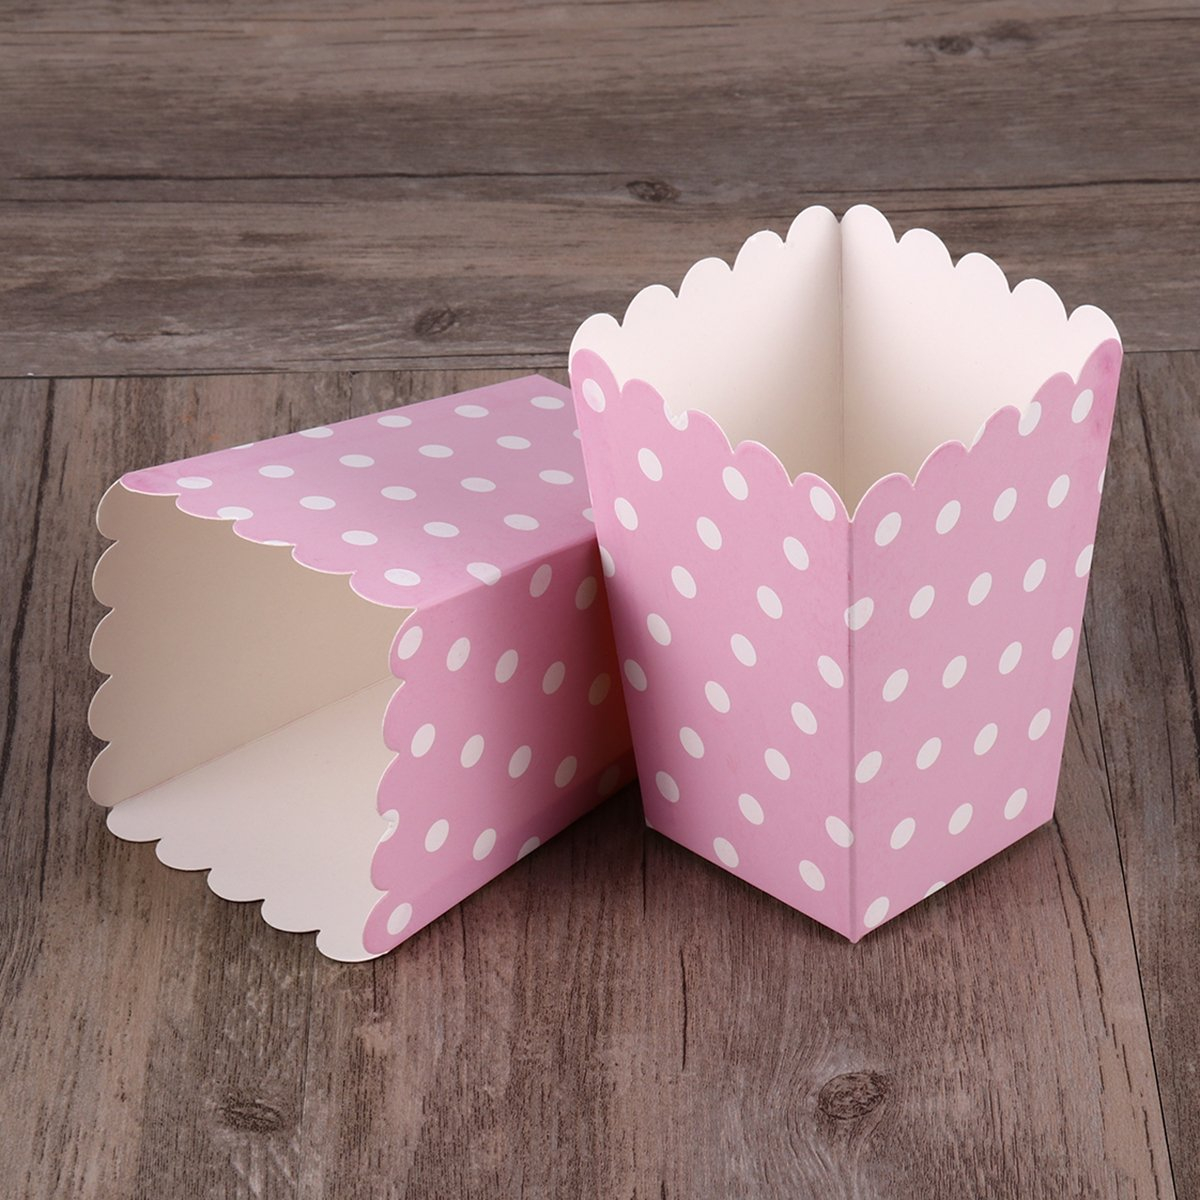 Amazon.com: NUOLUX Popcorn Boxes,Candy Containers Cartons Paper Bags ...